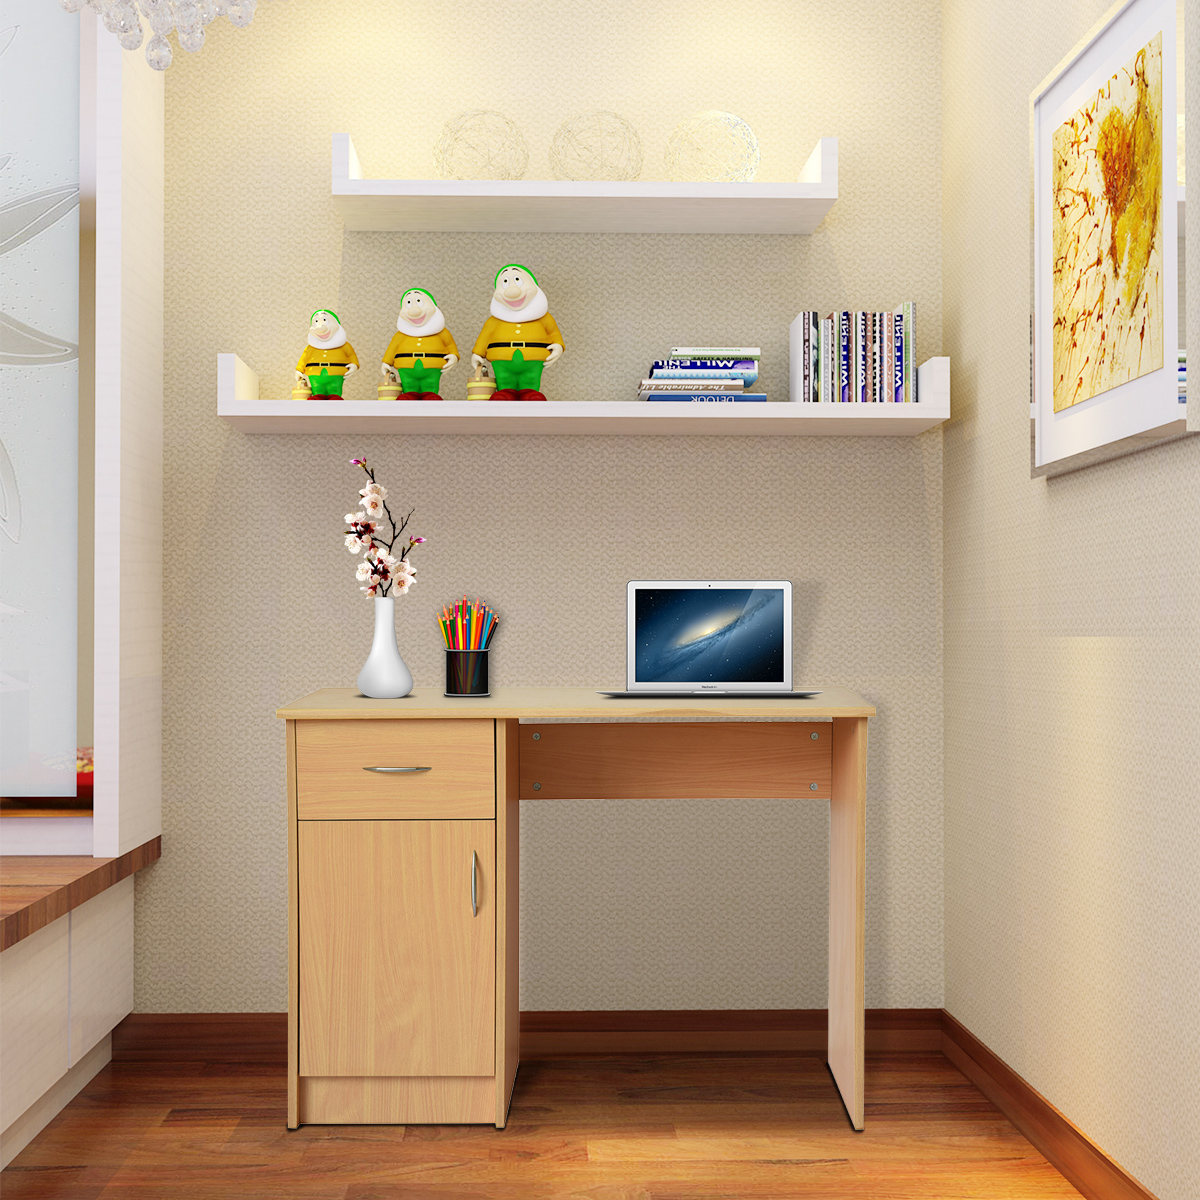 Panana Computer Desk With Cabinet w/1 Drawer for Home Office PC Writing TablePanana Computer Desk With Cabinet w/1 Drawer for Home Office PC Writing Table